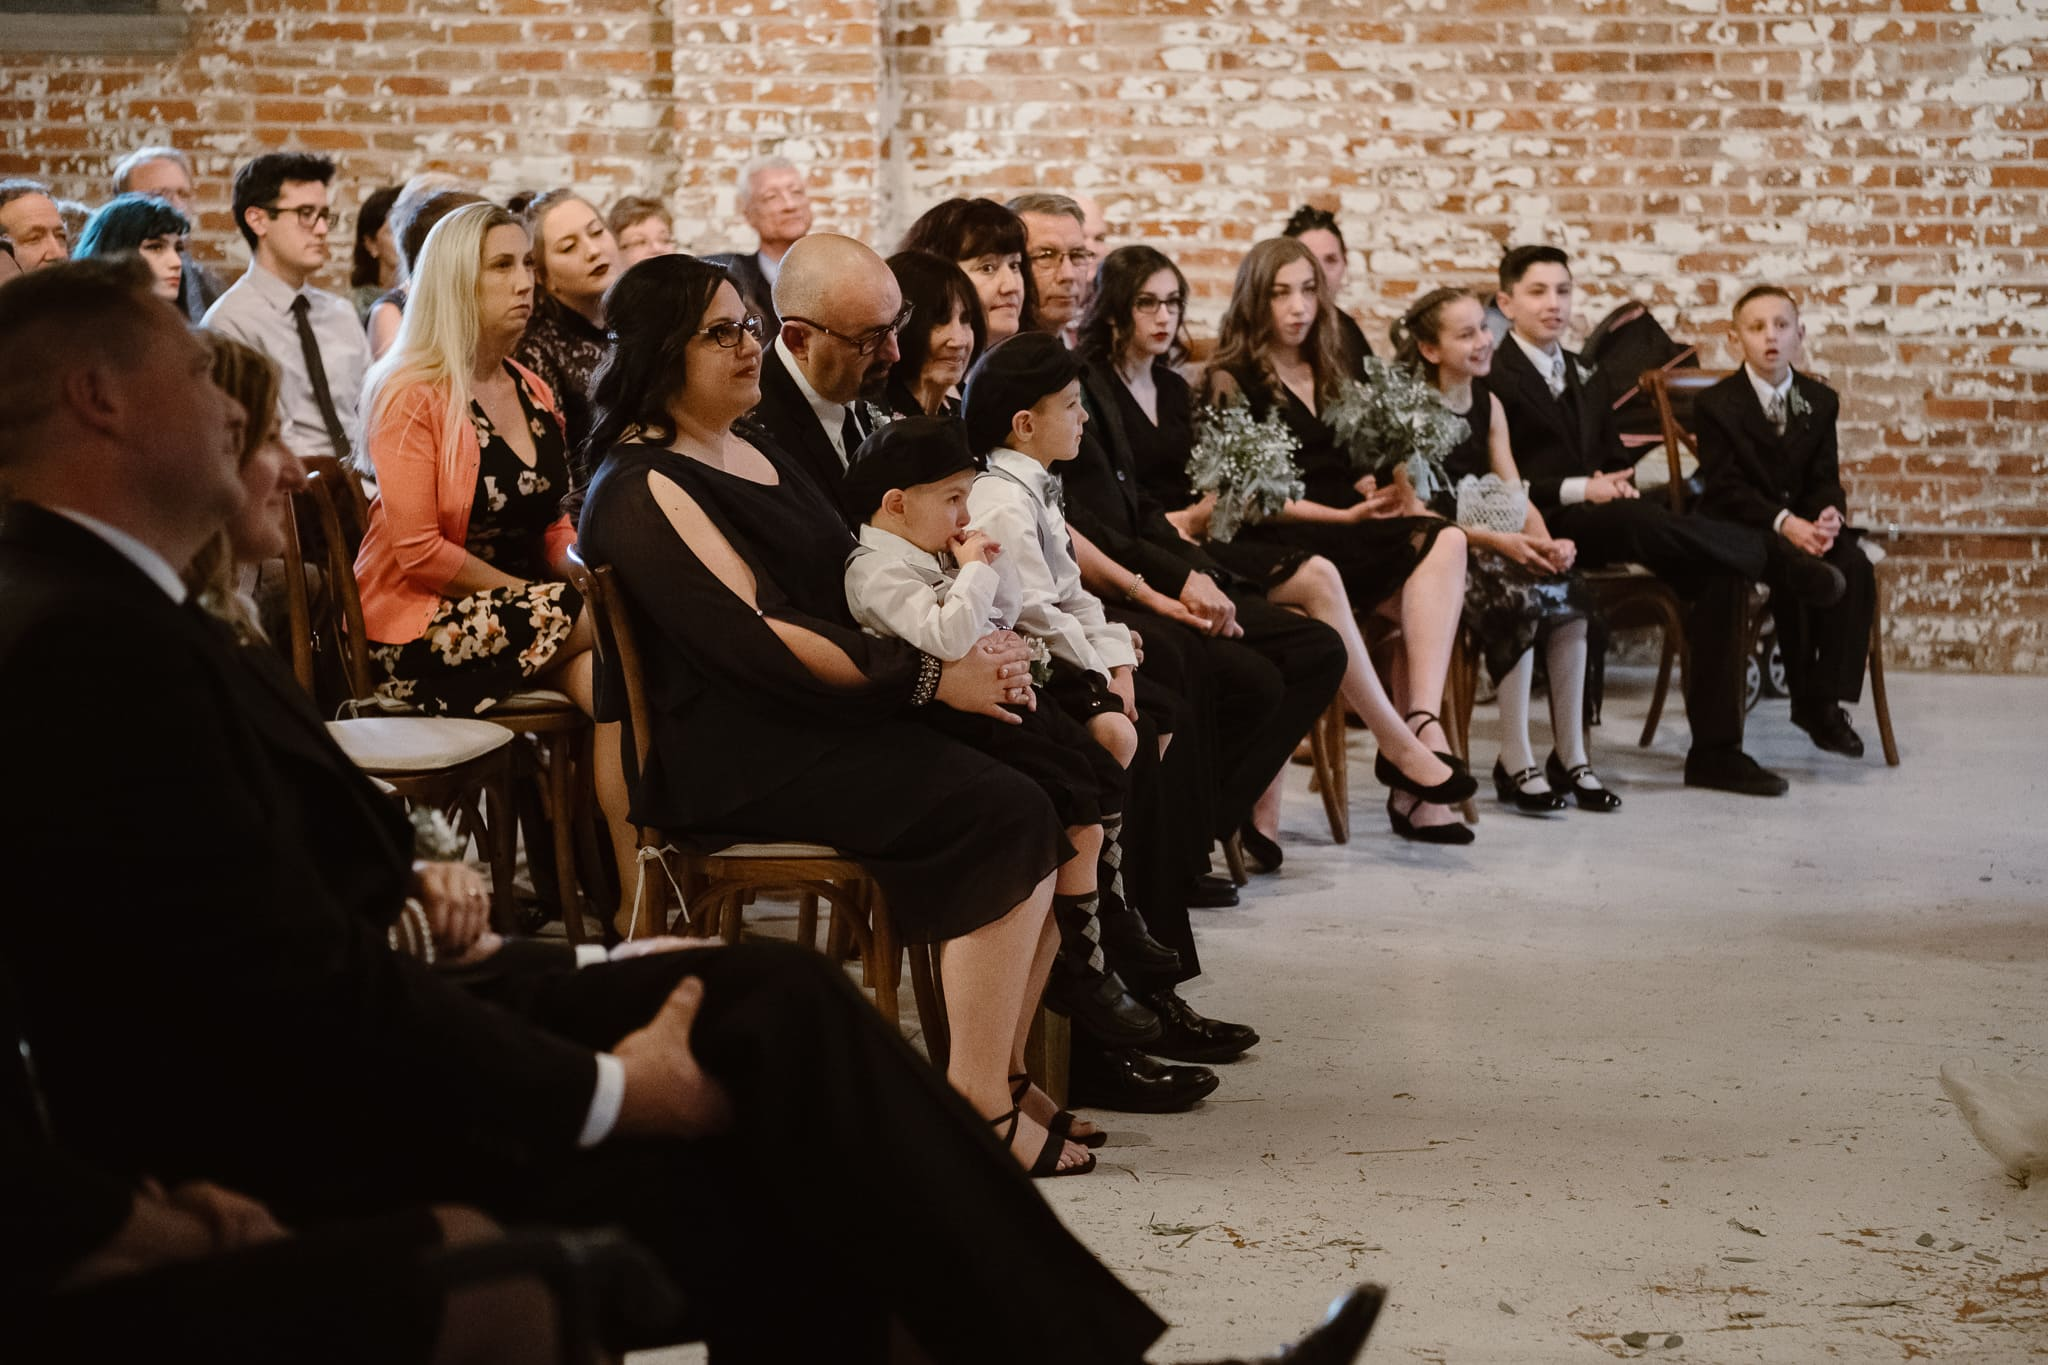 St Vrain Wedding Photographer | Longmont Wedding Photographer | Colorado Winter Wedding Photographer, Colorado industrial chic wedding ceremony, family watching ceremony